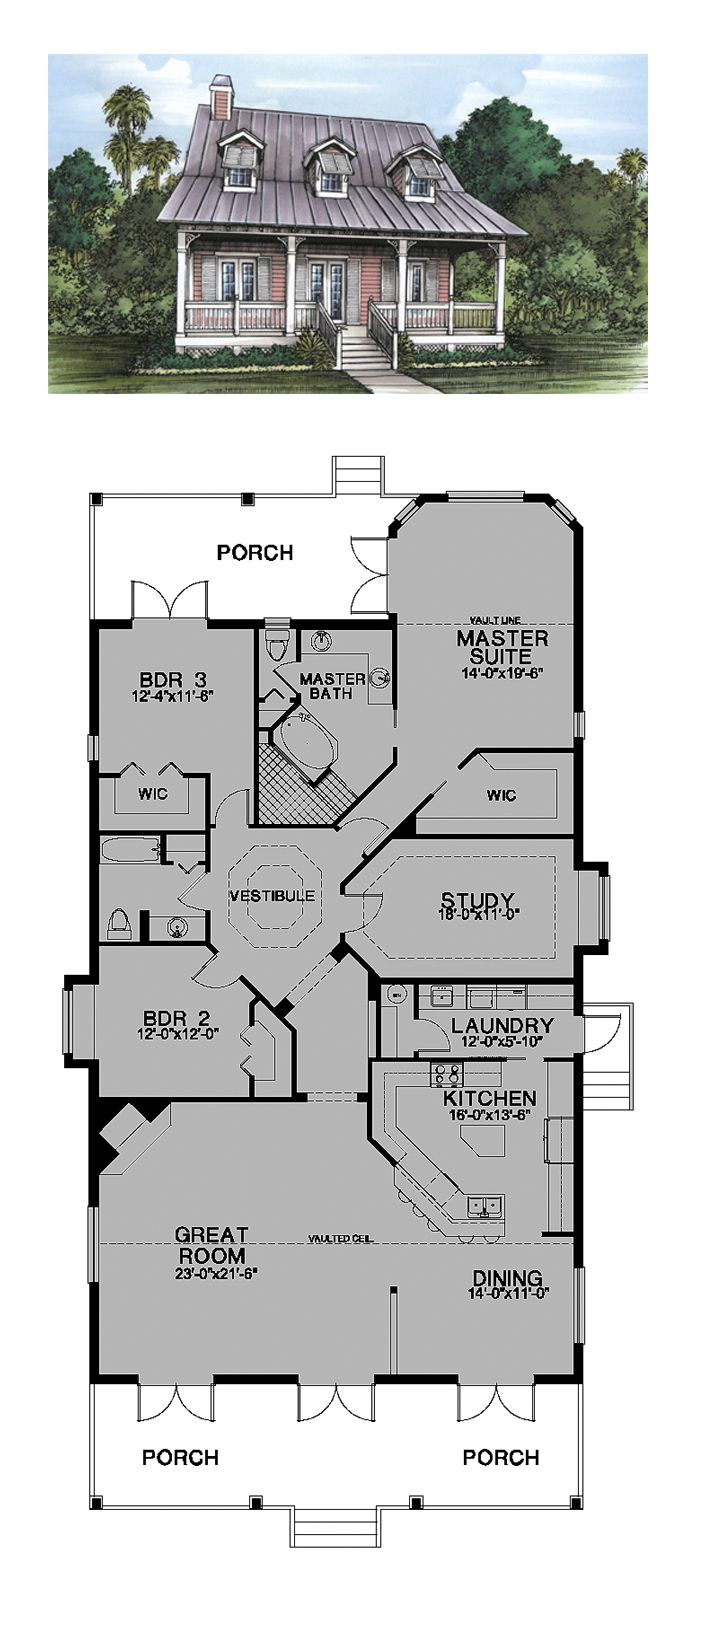 25 best house plans ideas on pinterest 4 bedroom house Houseplans com